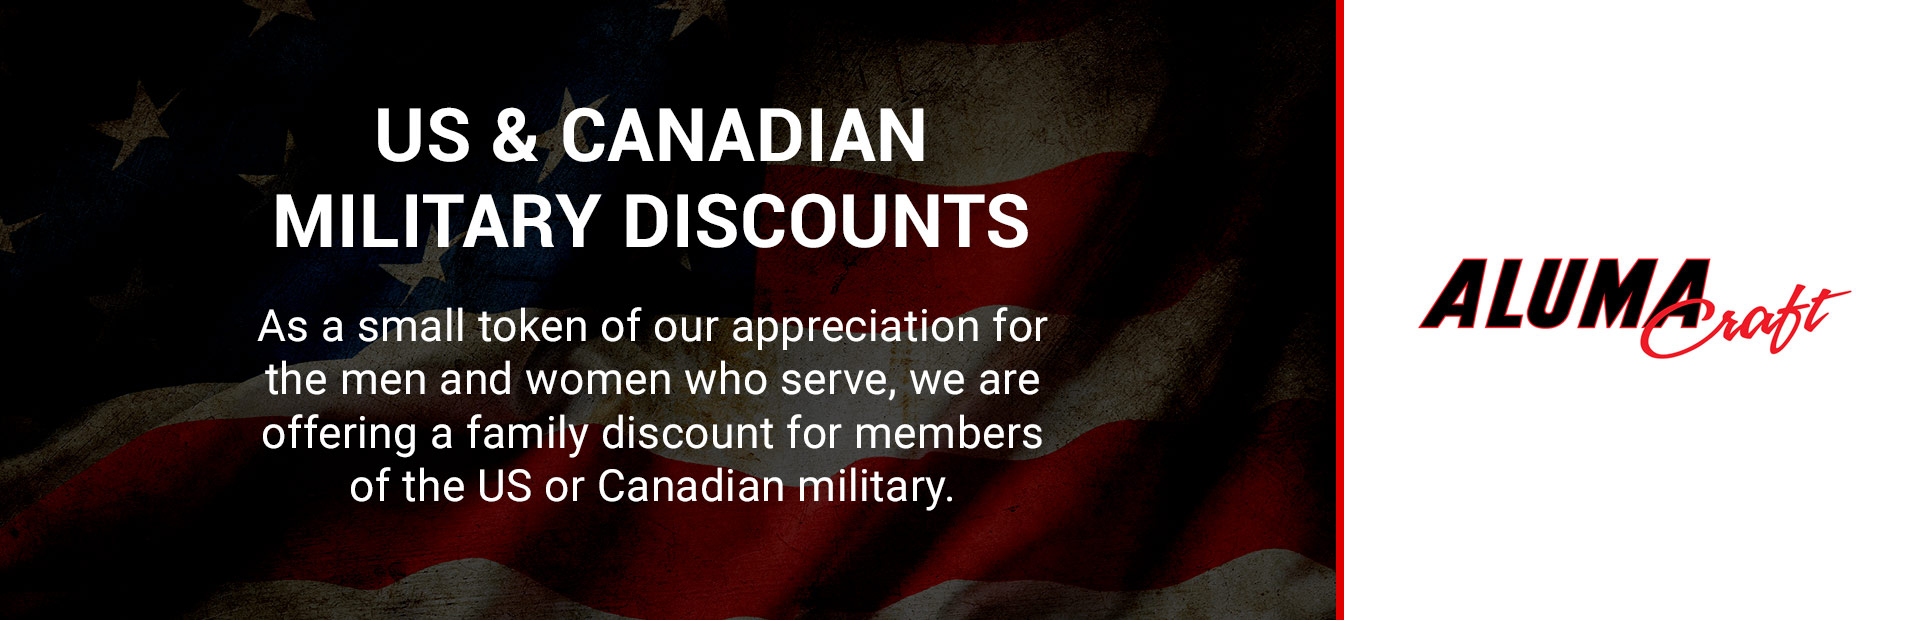 US & Canadian Military Discounts